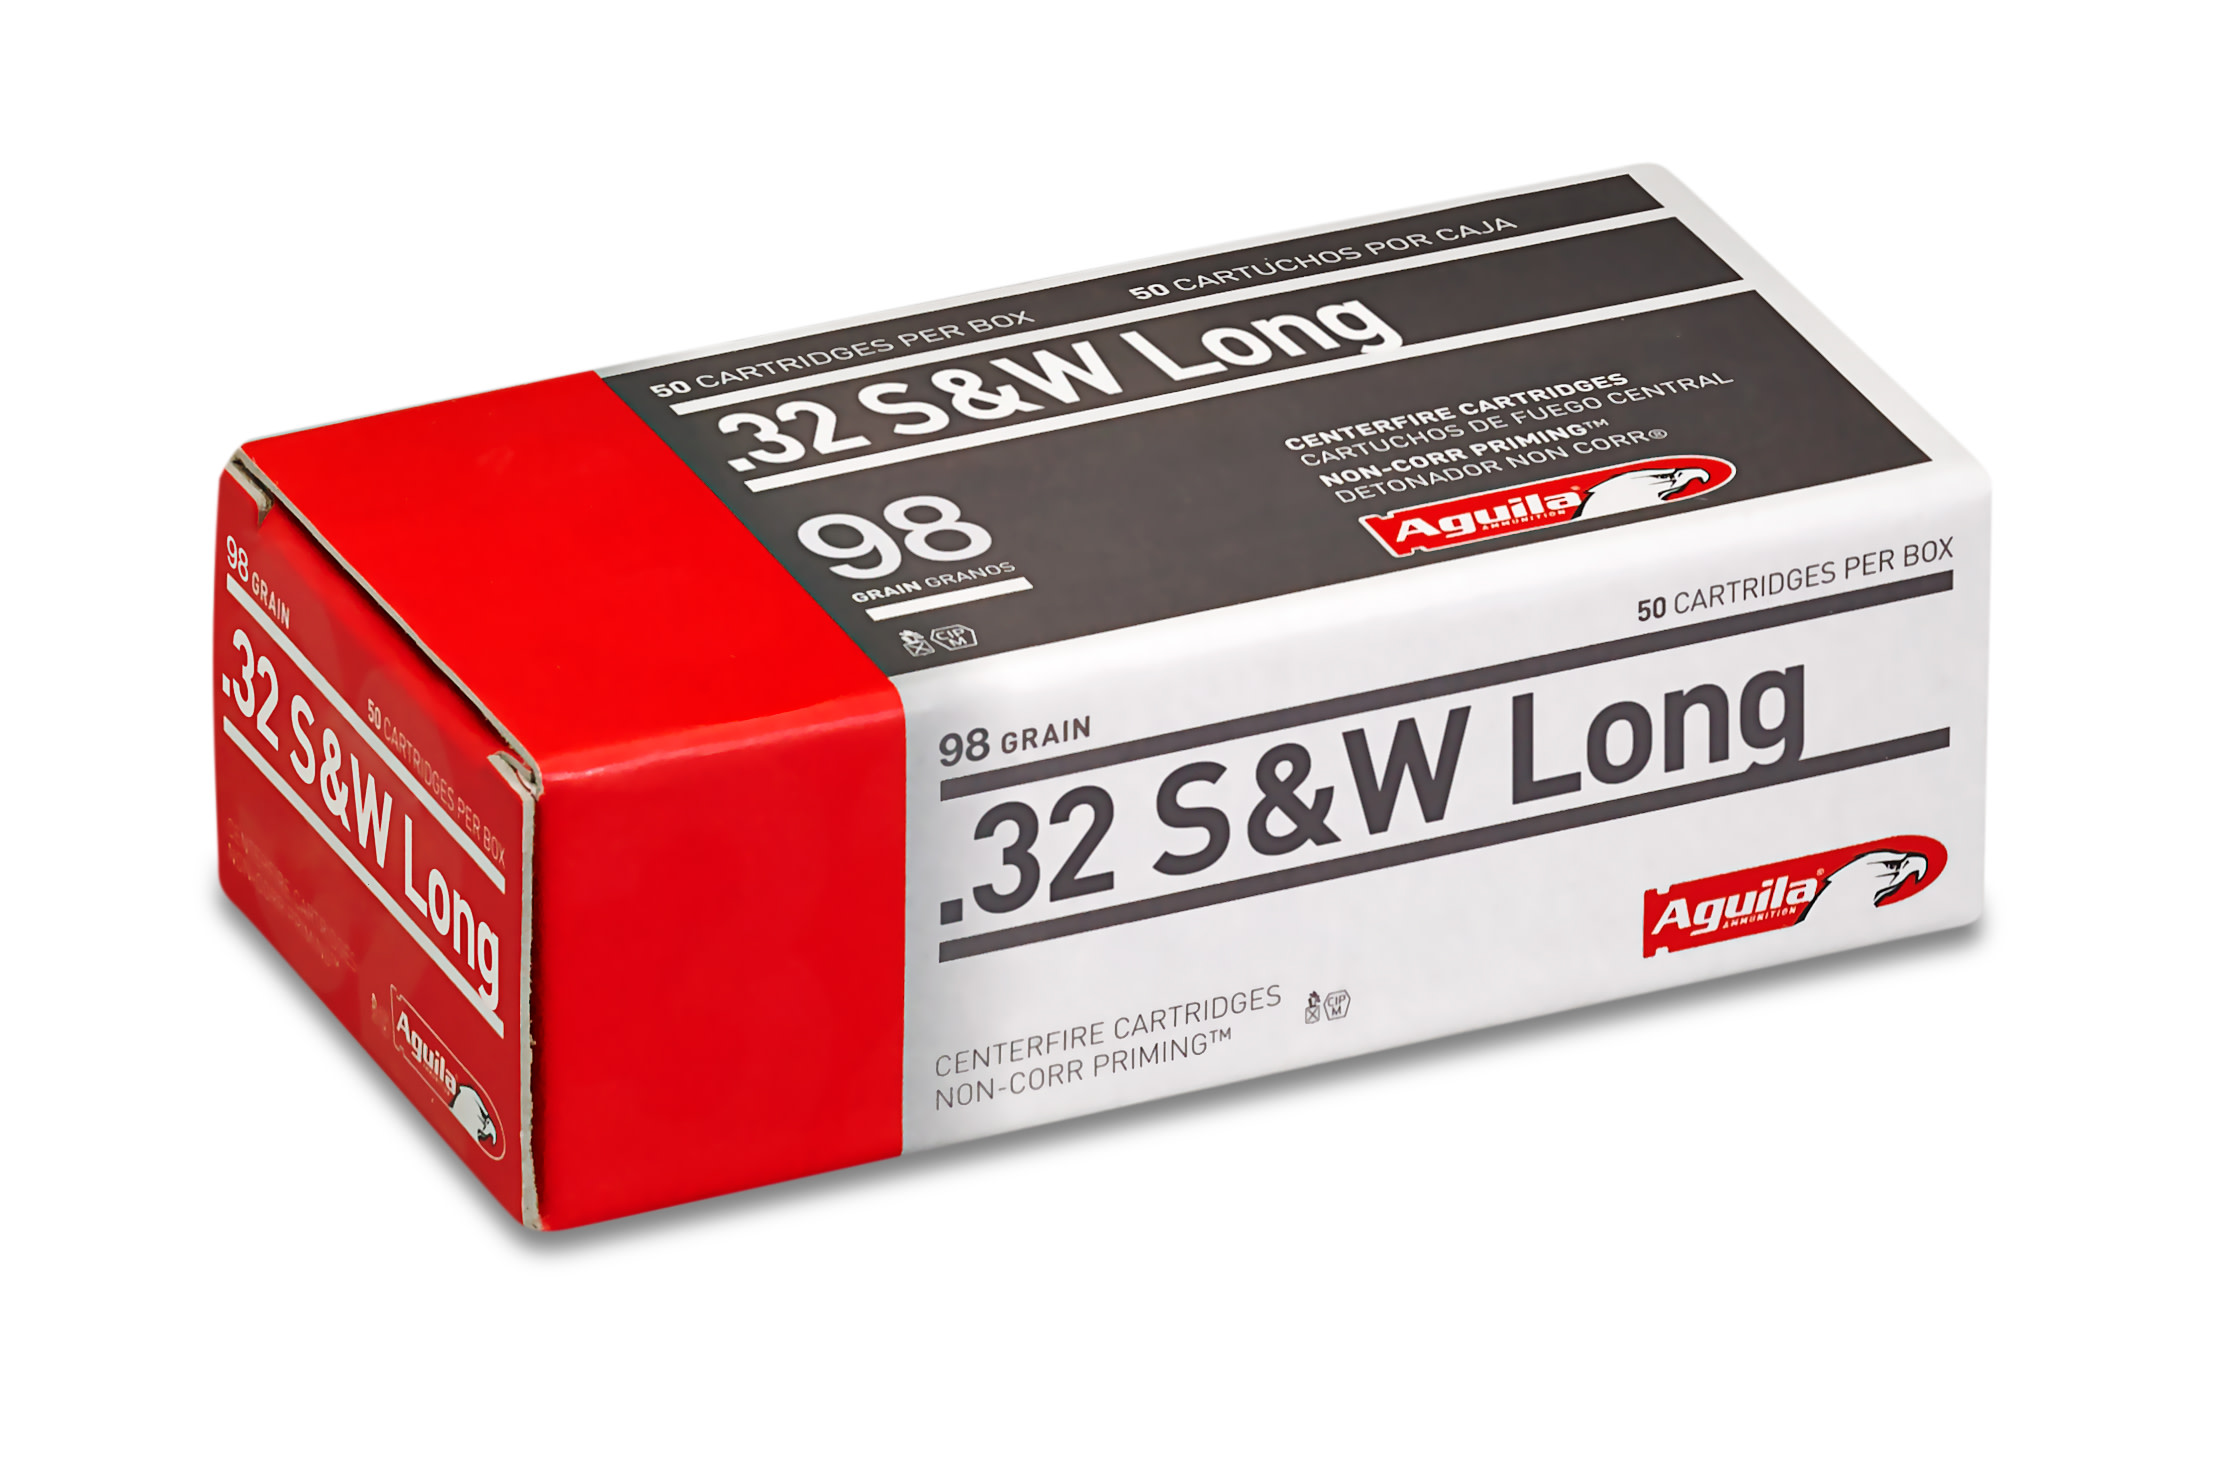 Aguila Ammunition 32 S&W Long 98 Grain Lead Round Nose Per 50